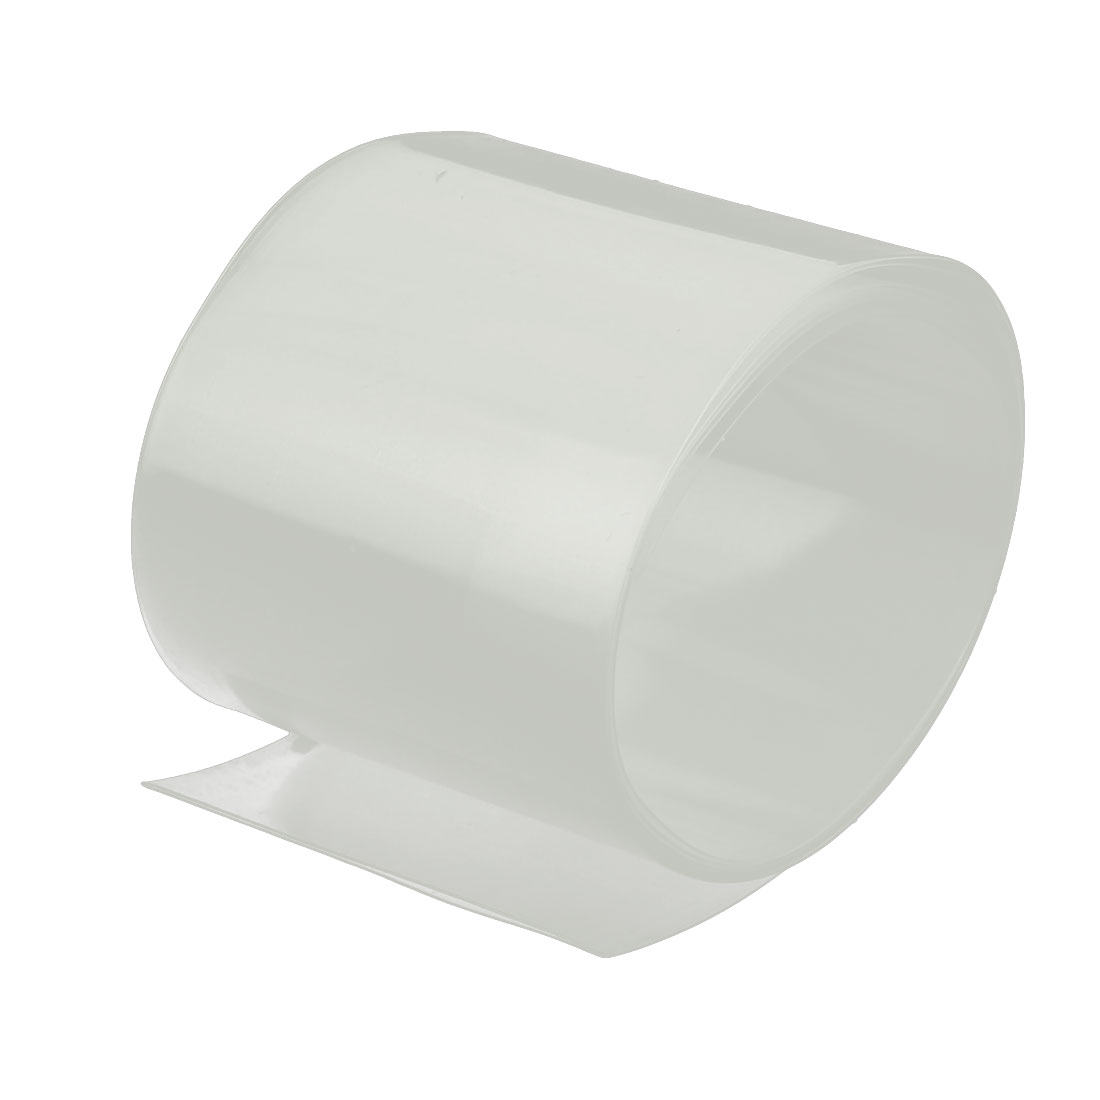 50mm Flat Width 1M Length PVC Heat Shrinkable Tube Clear for Capacitive Battery